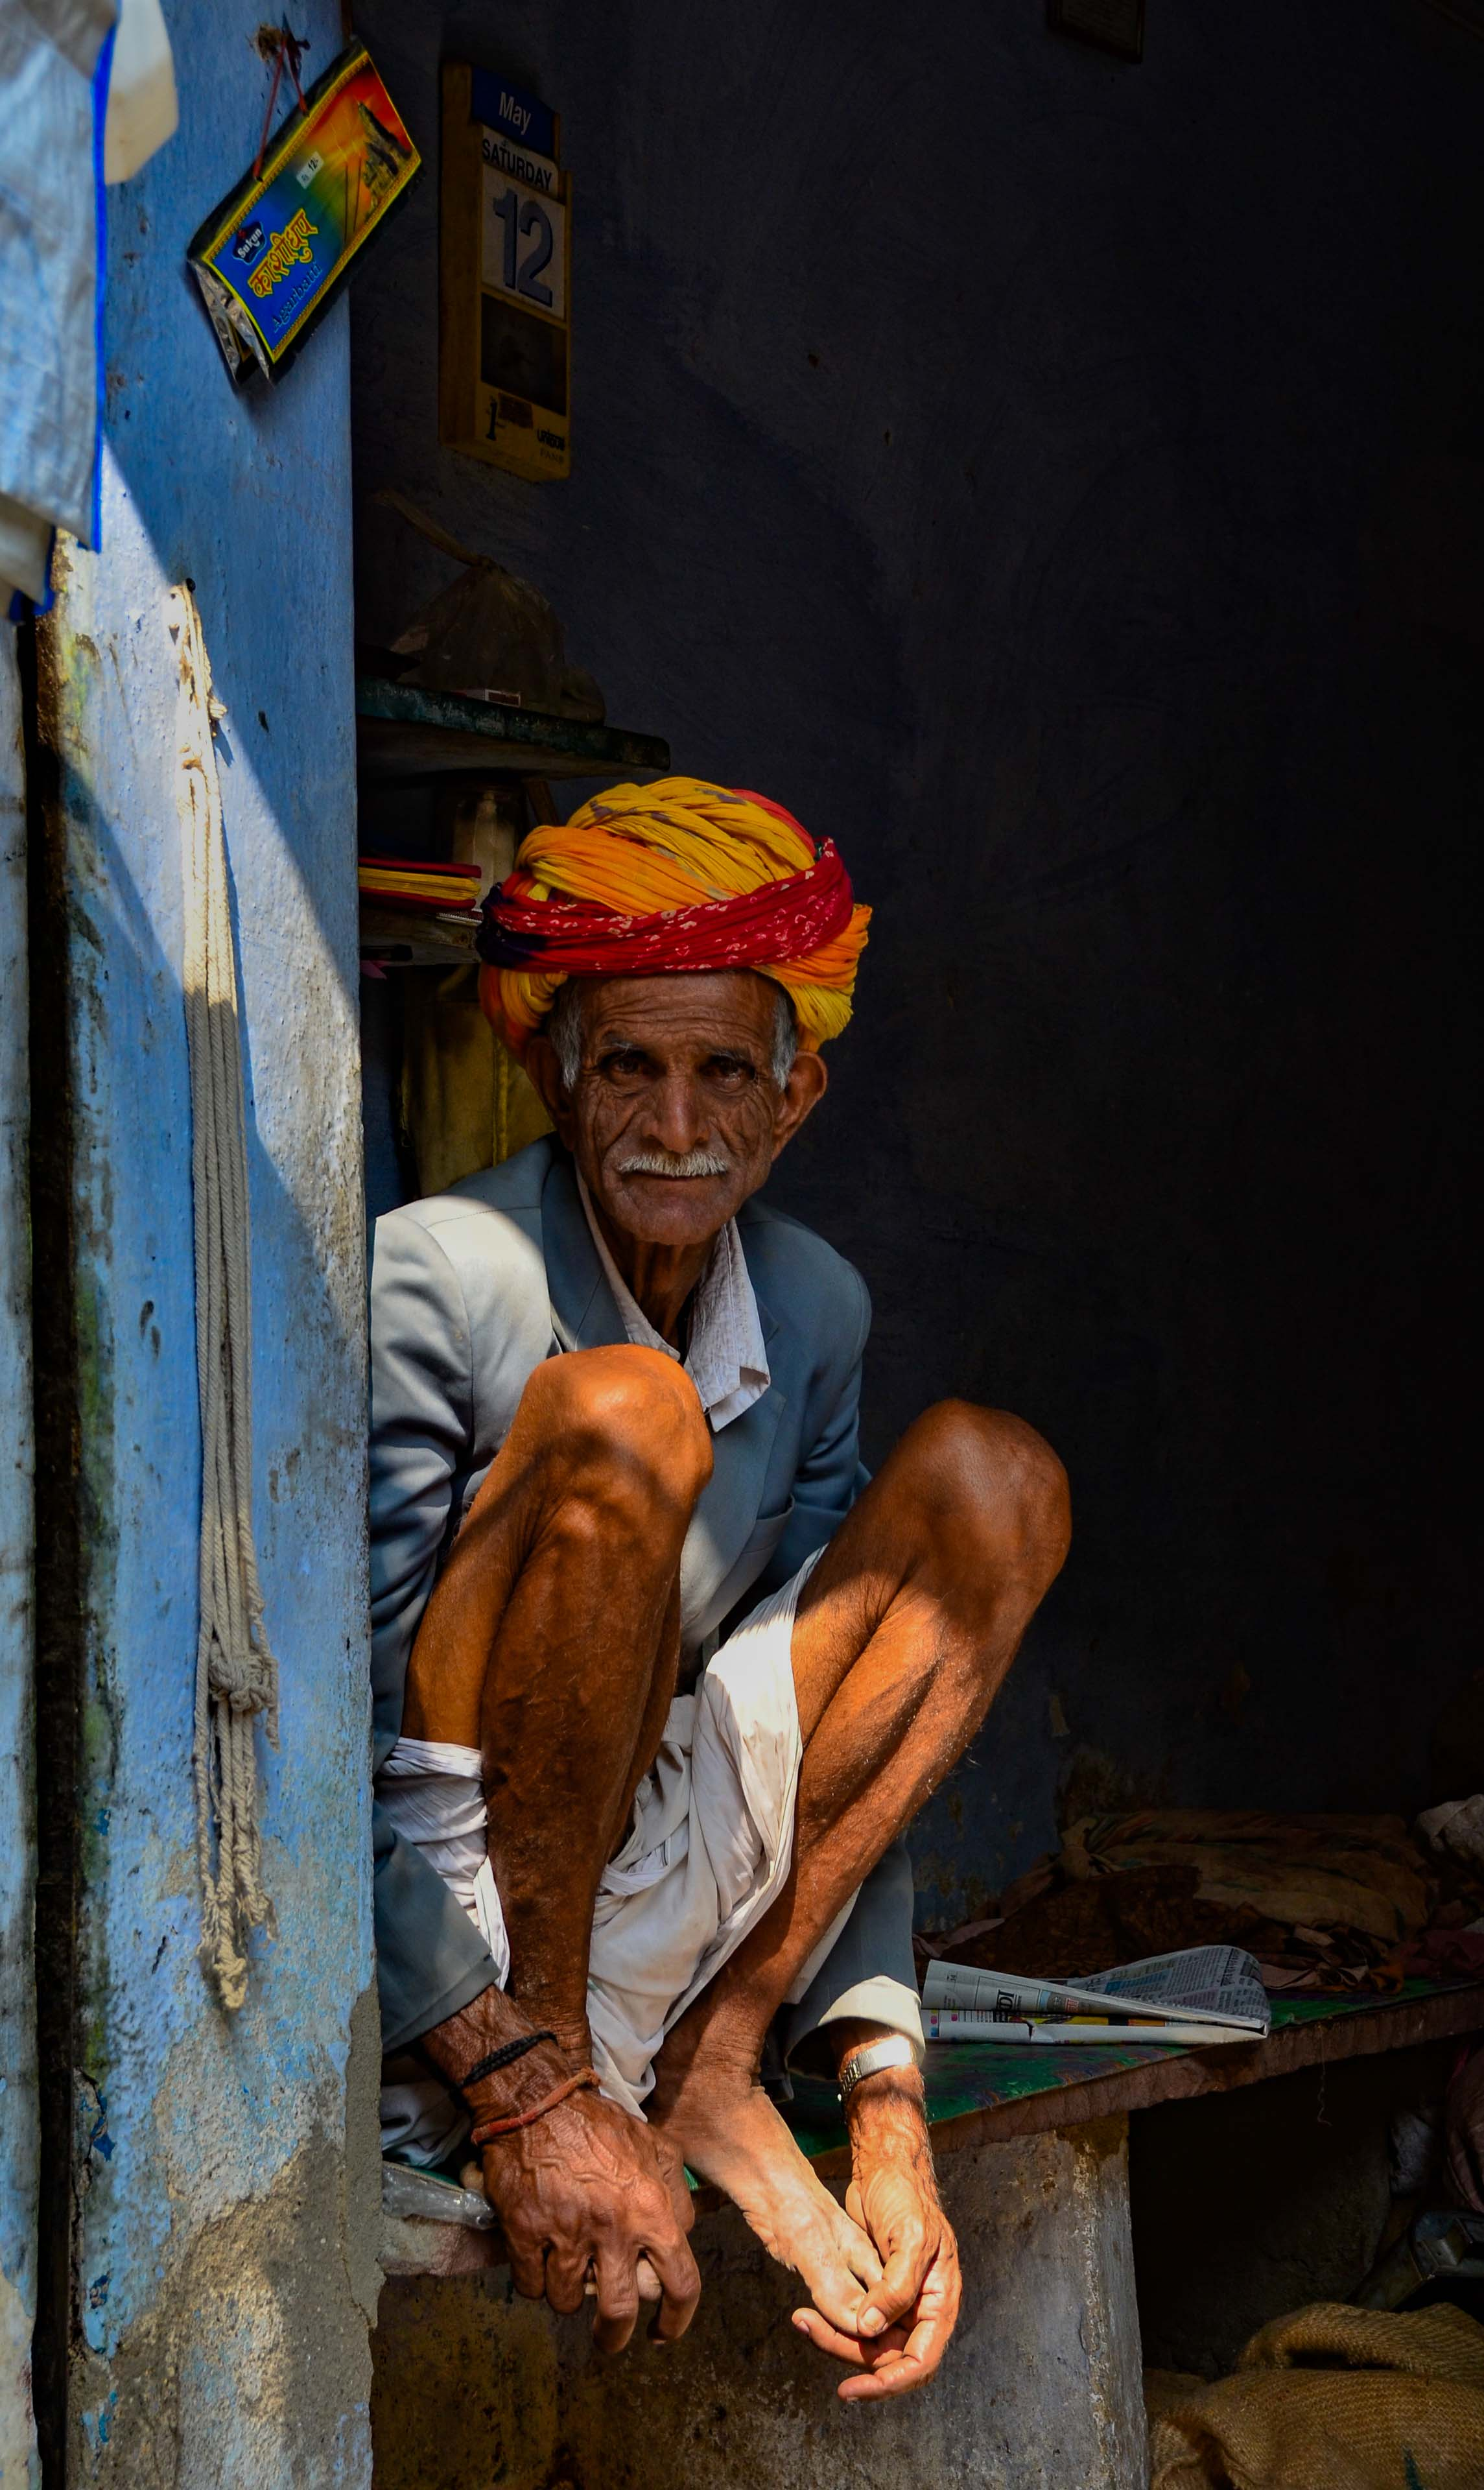 Man in Shadow, Udaipur, India 2012